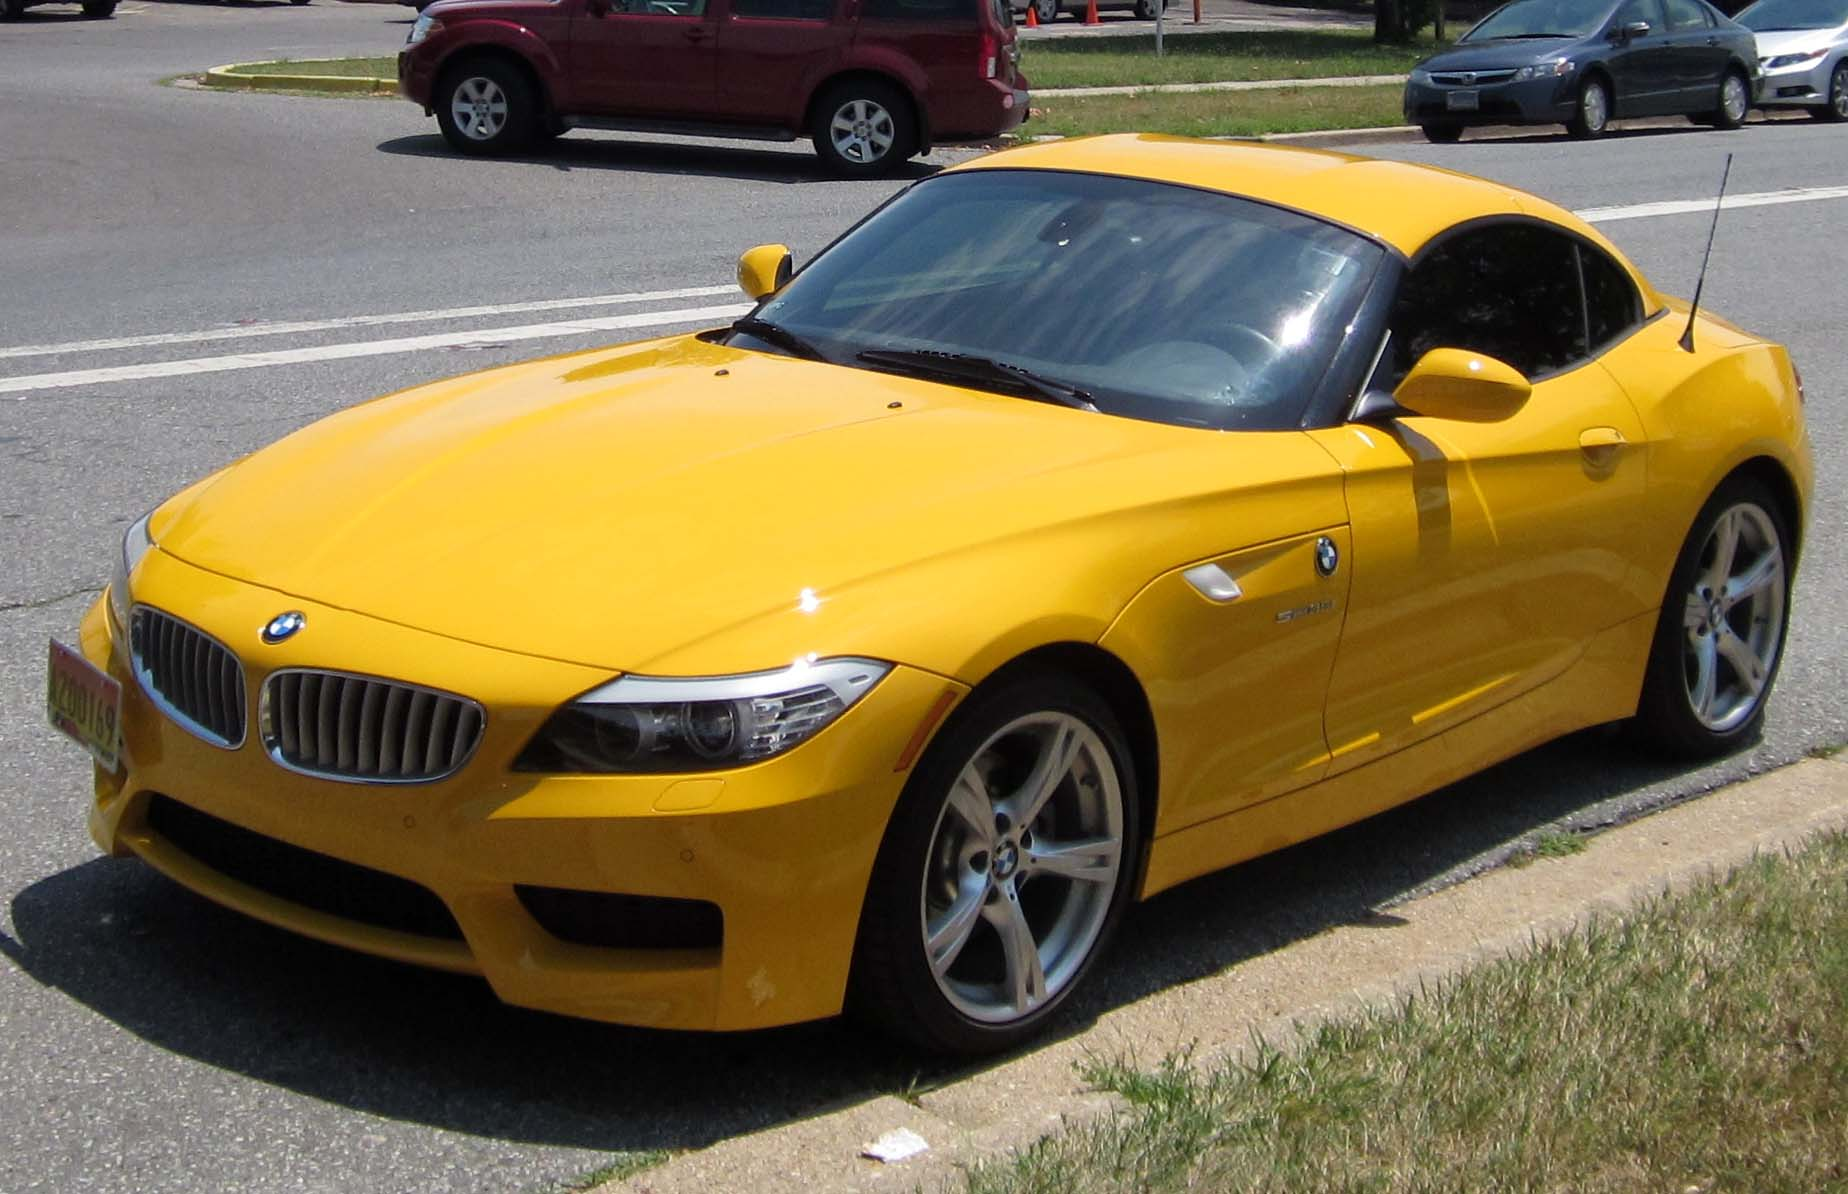 File:2nd BMW Z4 -- 07-11-2012.JPG - Wikimedia Commons